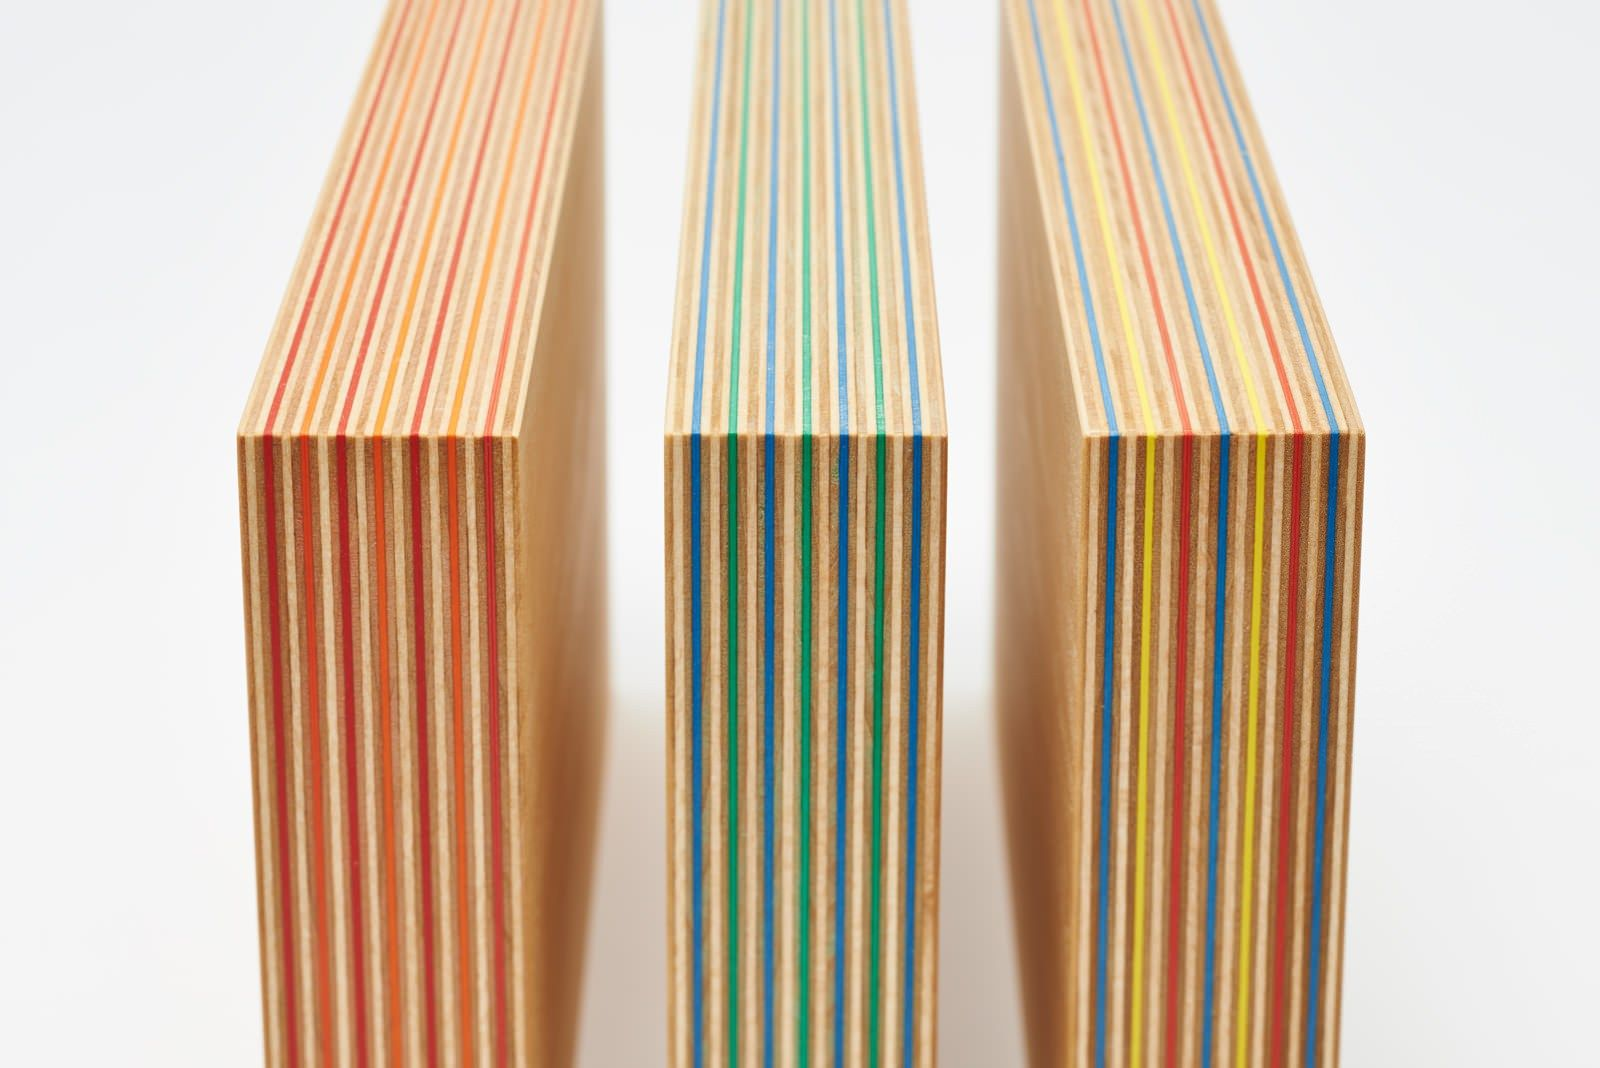 Takizawa Plywood Veneer Paper Wood With Integrated Coloured Papers Some Of Their Furniture They Are Based In Hokkaido See Blogroll For A Link Mit Bildern Sperrholz Design Holz Ideen